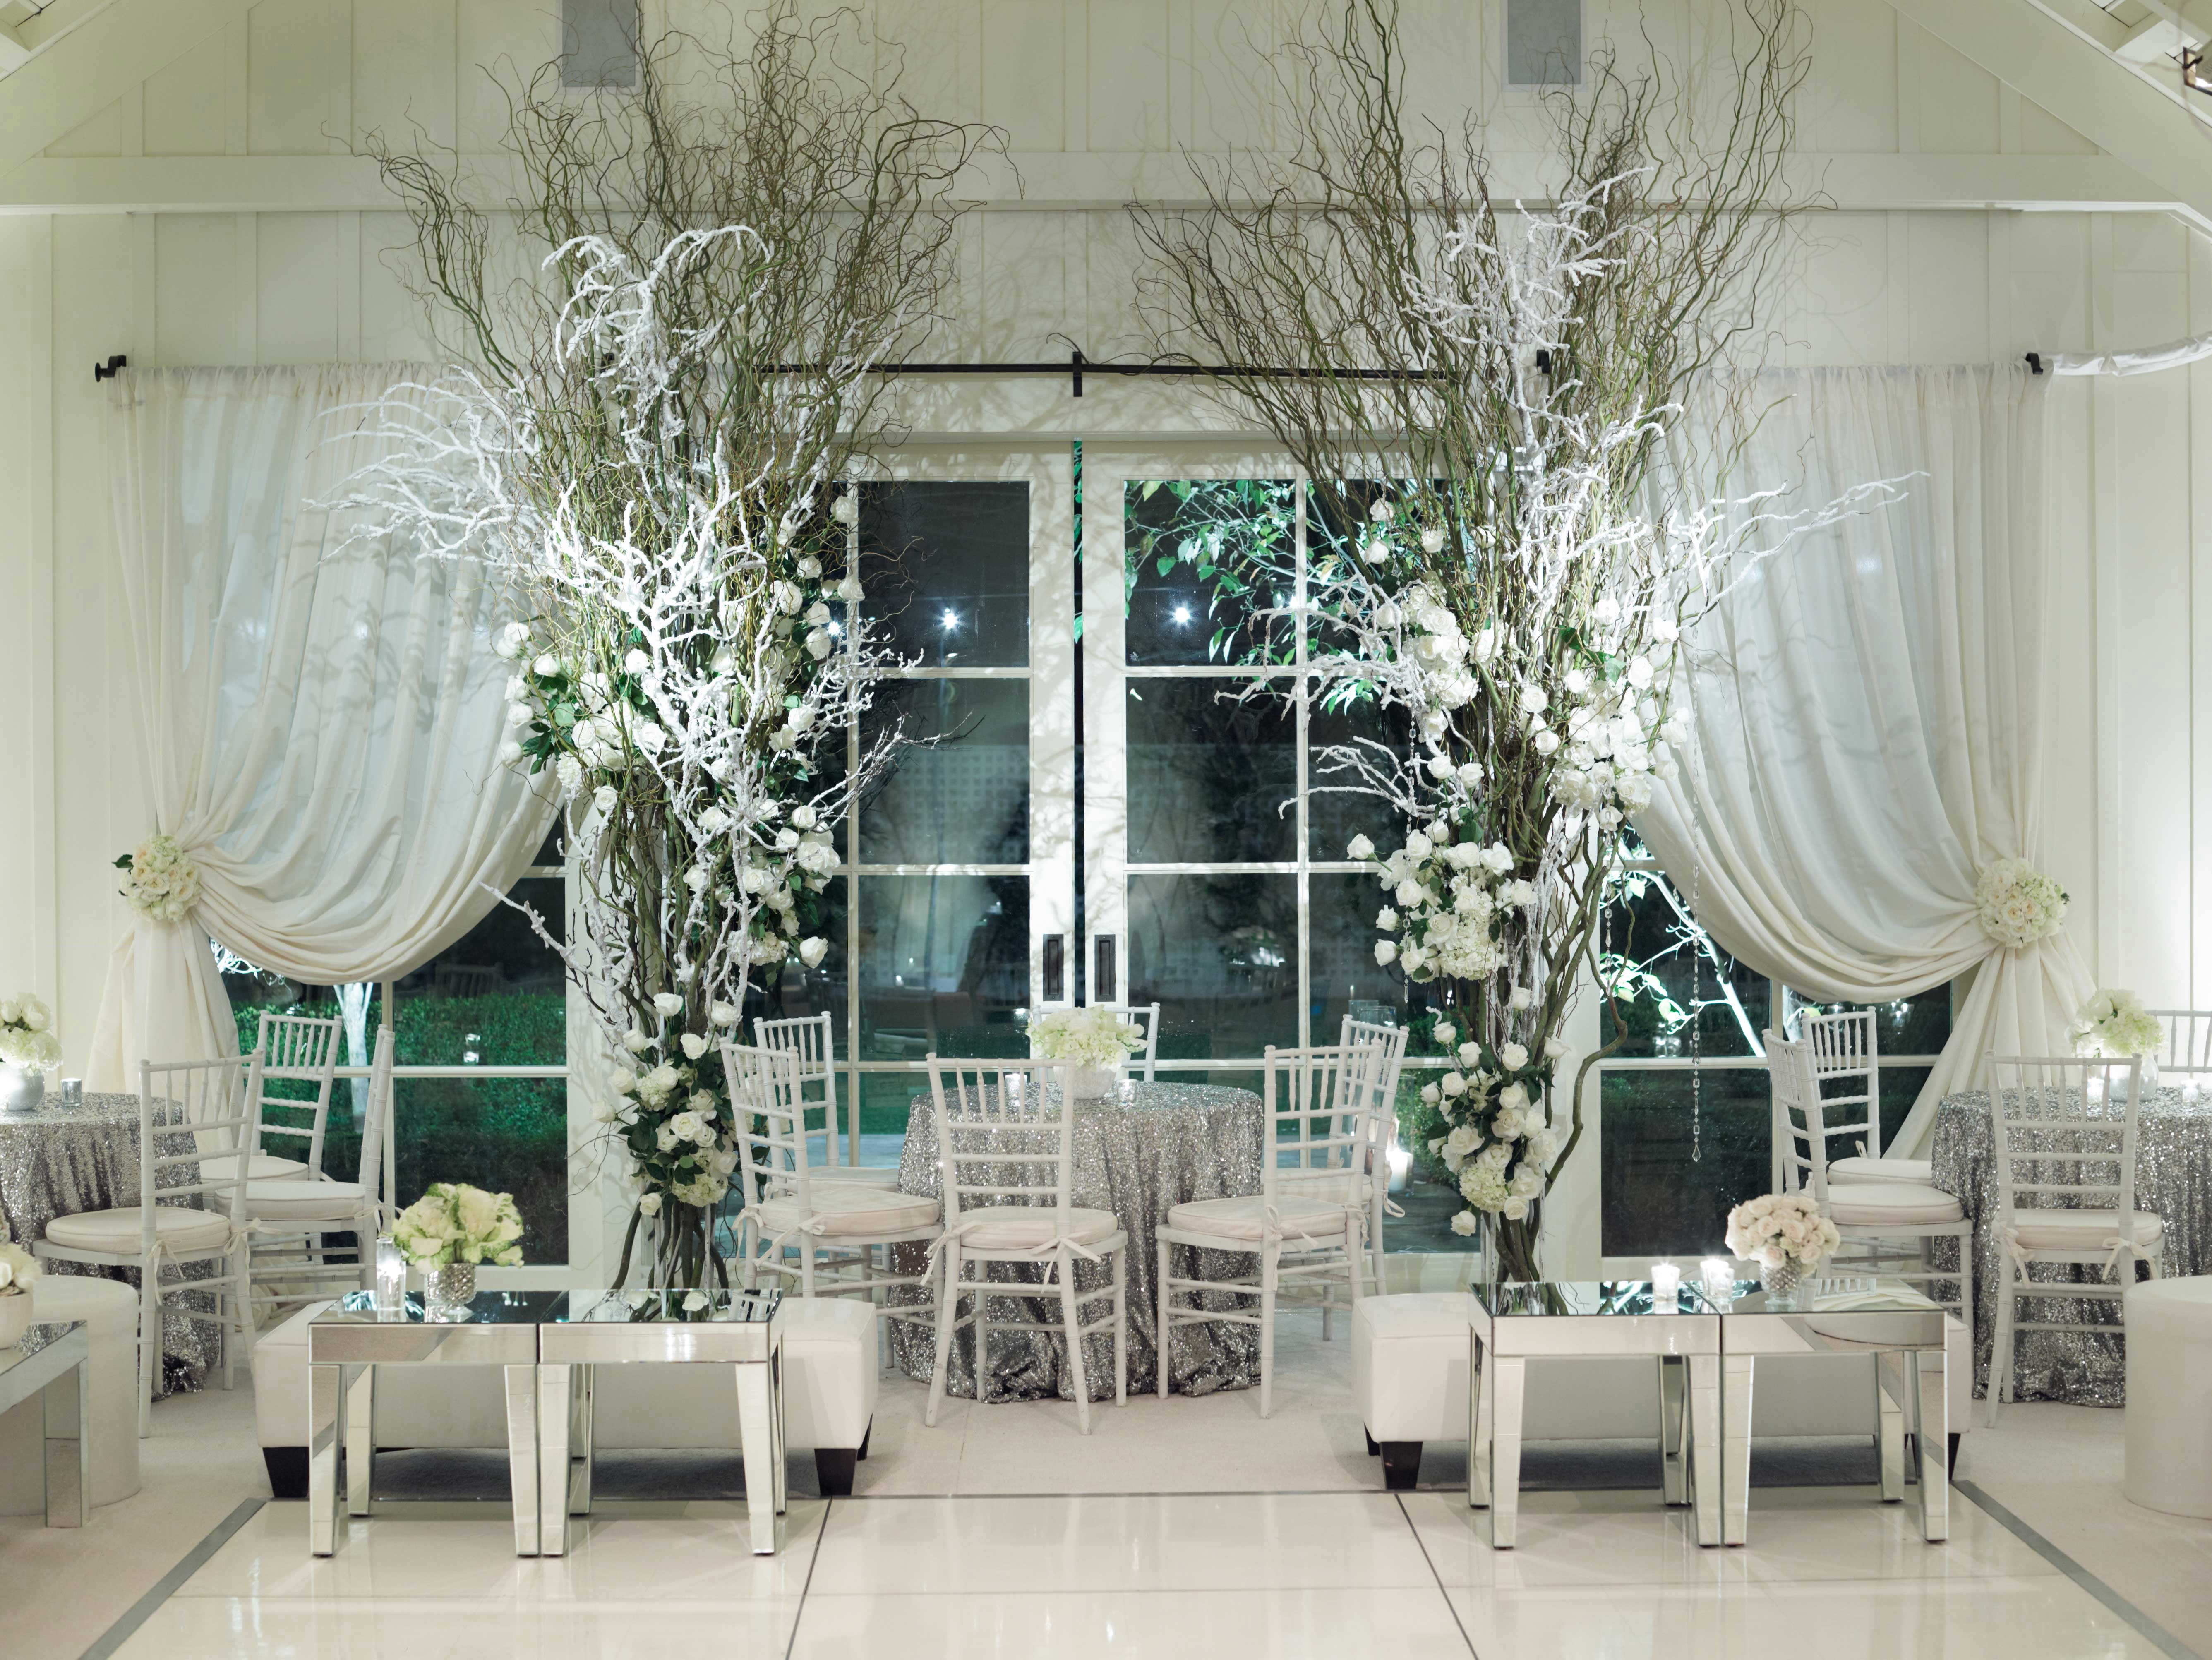 White winter wedding after party decorations